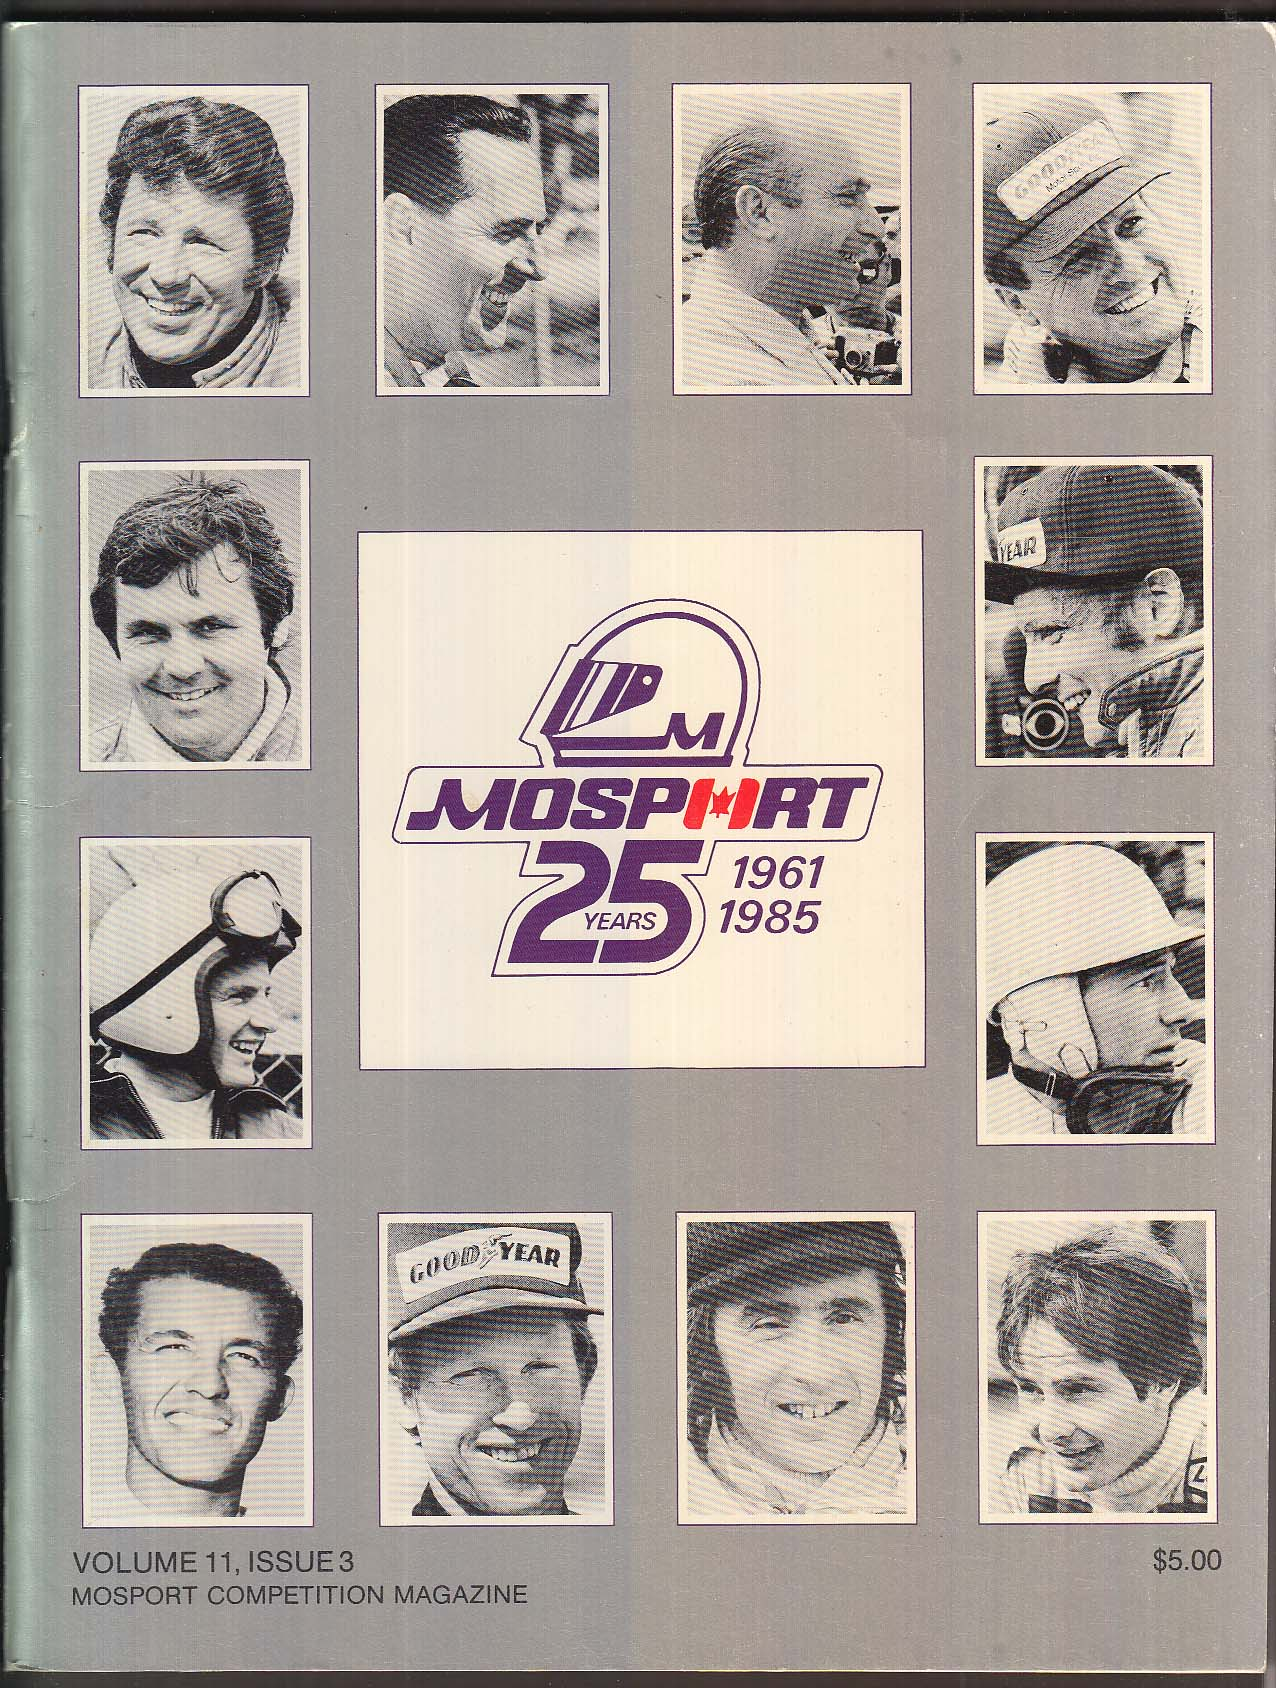 Mosport Competition Magazine Vol 11 #3 1985